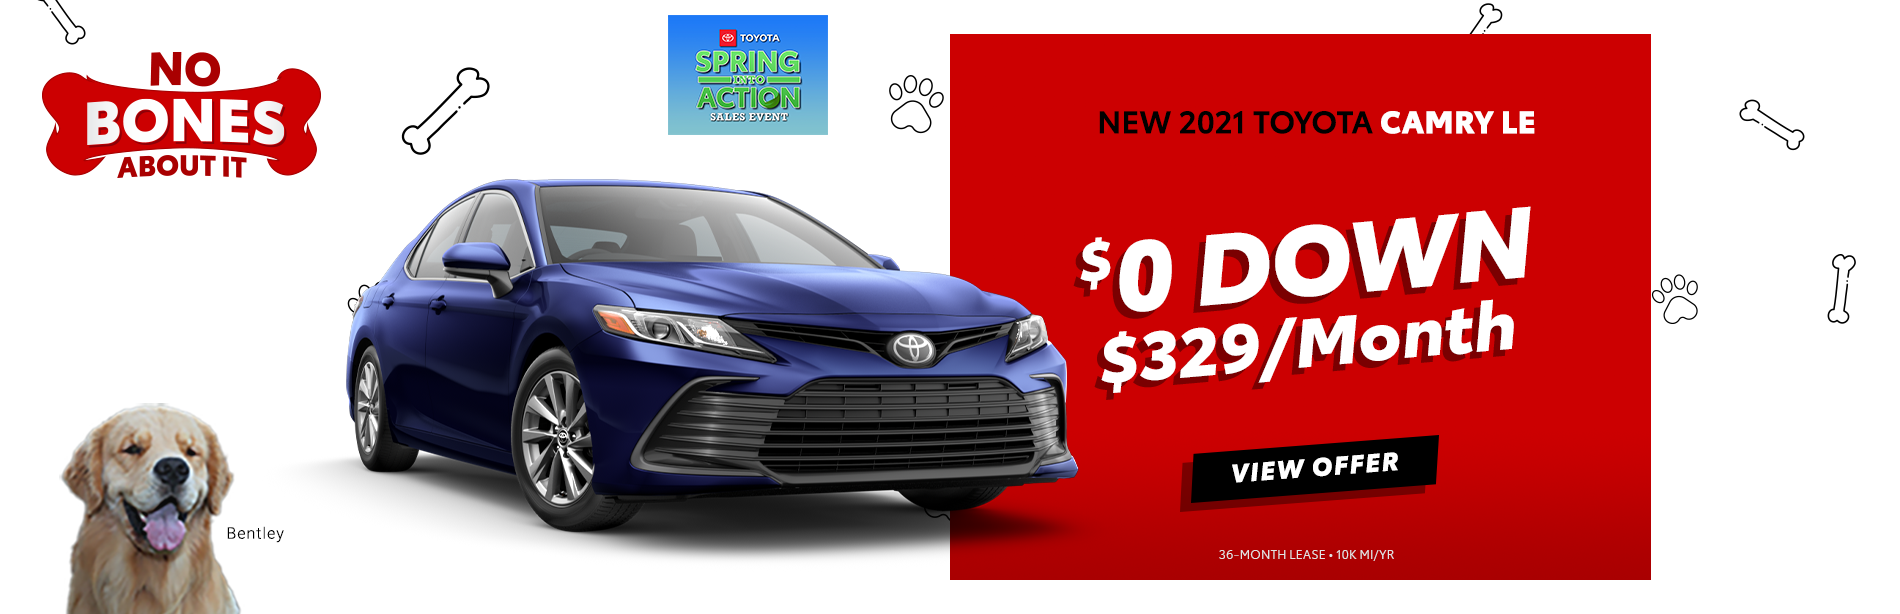 View Rochester Toyota Specials on new 2021 Camry select models